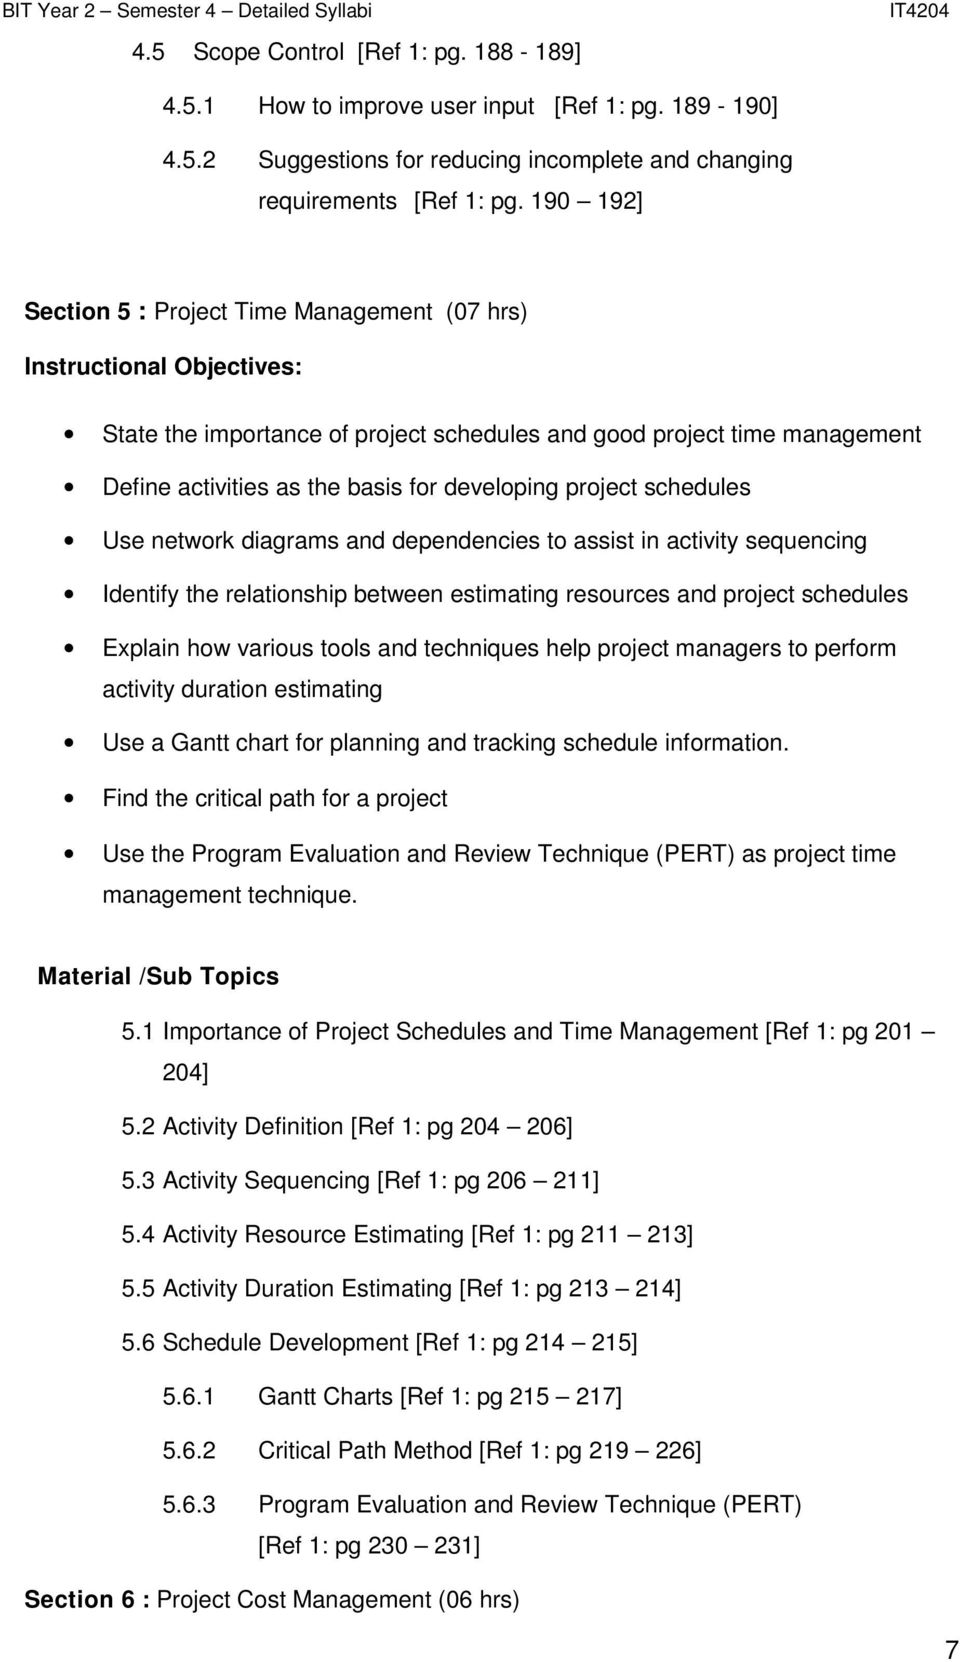 developing project schedules Use network diagrams and dependencies to assist in activity sequencing Identify the relationship between estimating resources and project schedules Explain how various